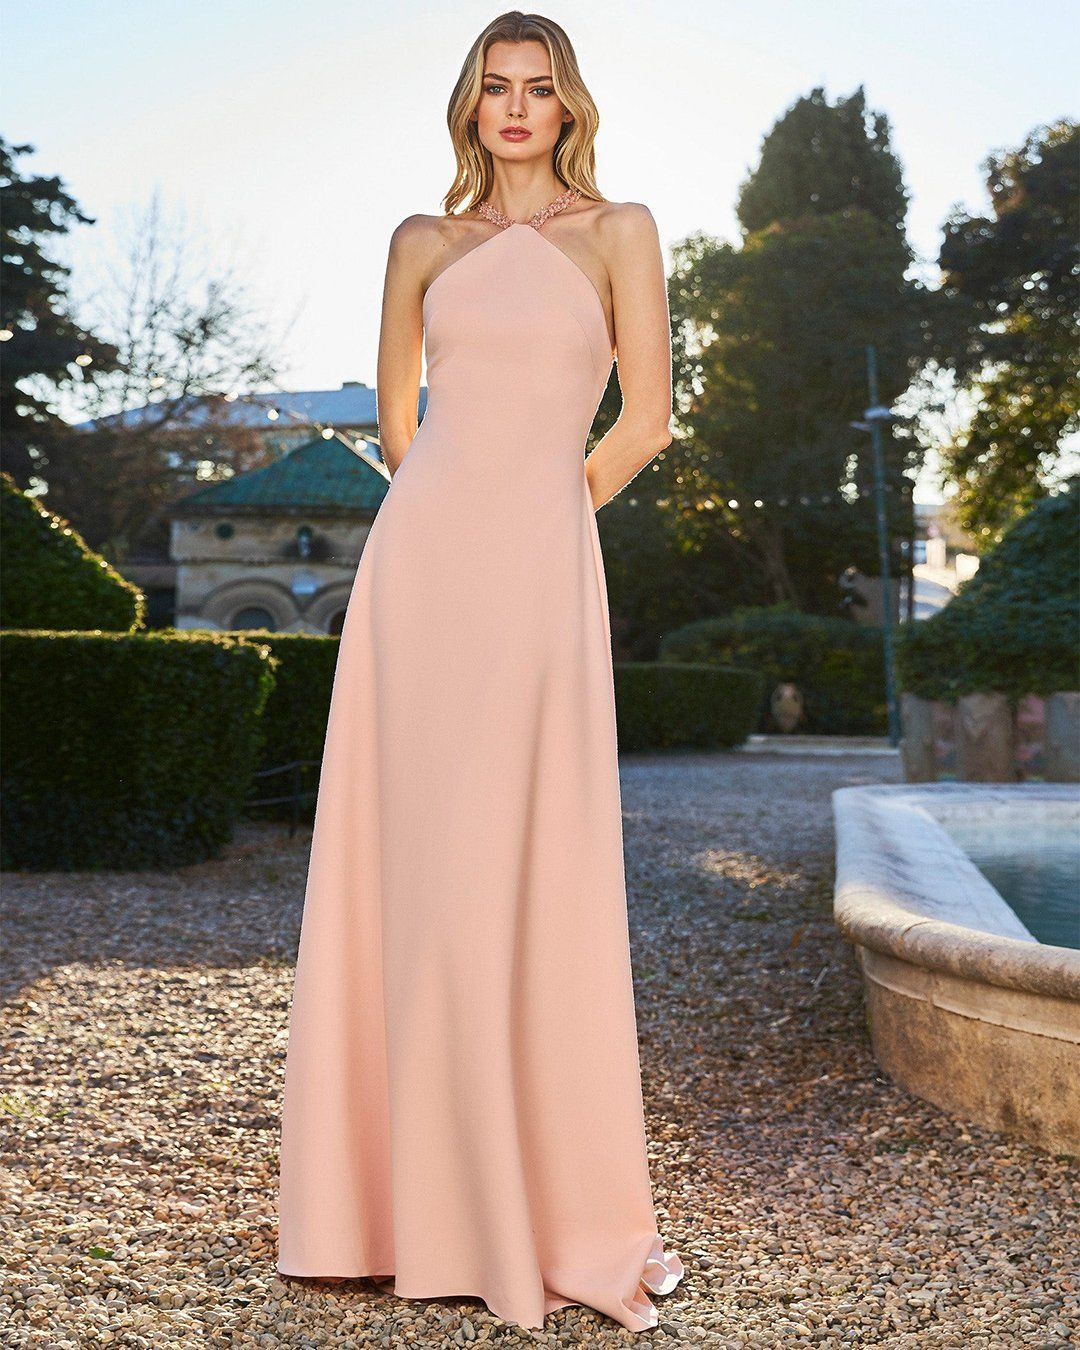 Wedding Guest Outfit To Wear In 2021 In 2021 Wedding Guest Outfit Formal Wedding Guest Outfit Short Bridal Dress [ 1350 x 1080 Pixel ]